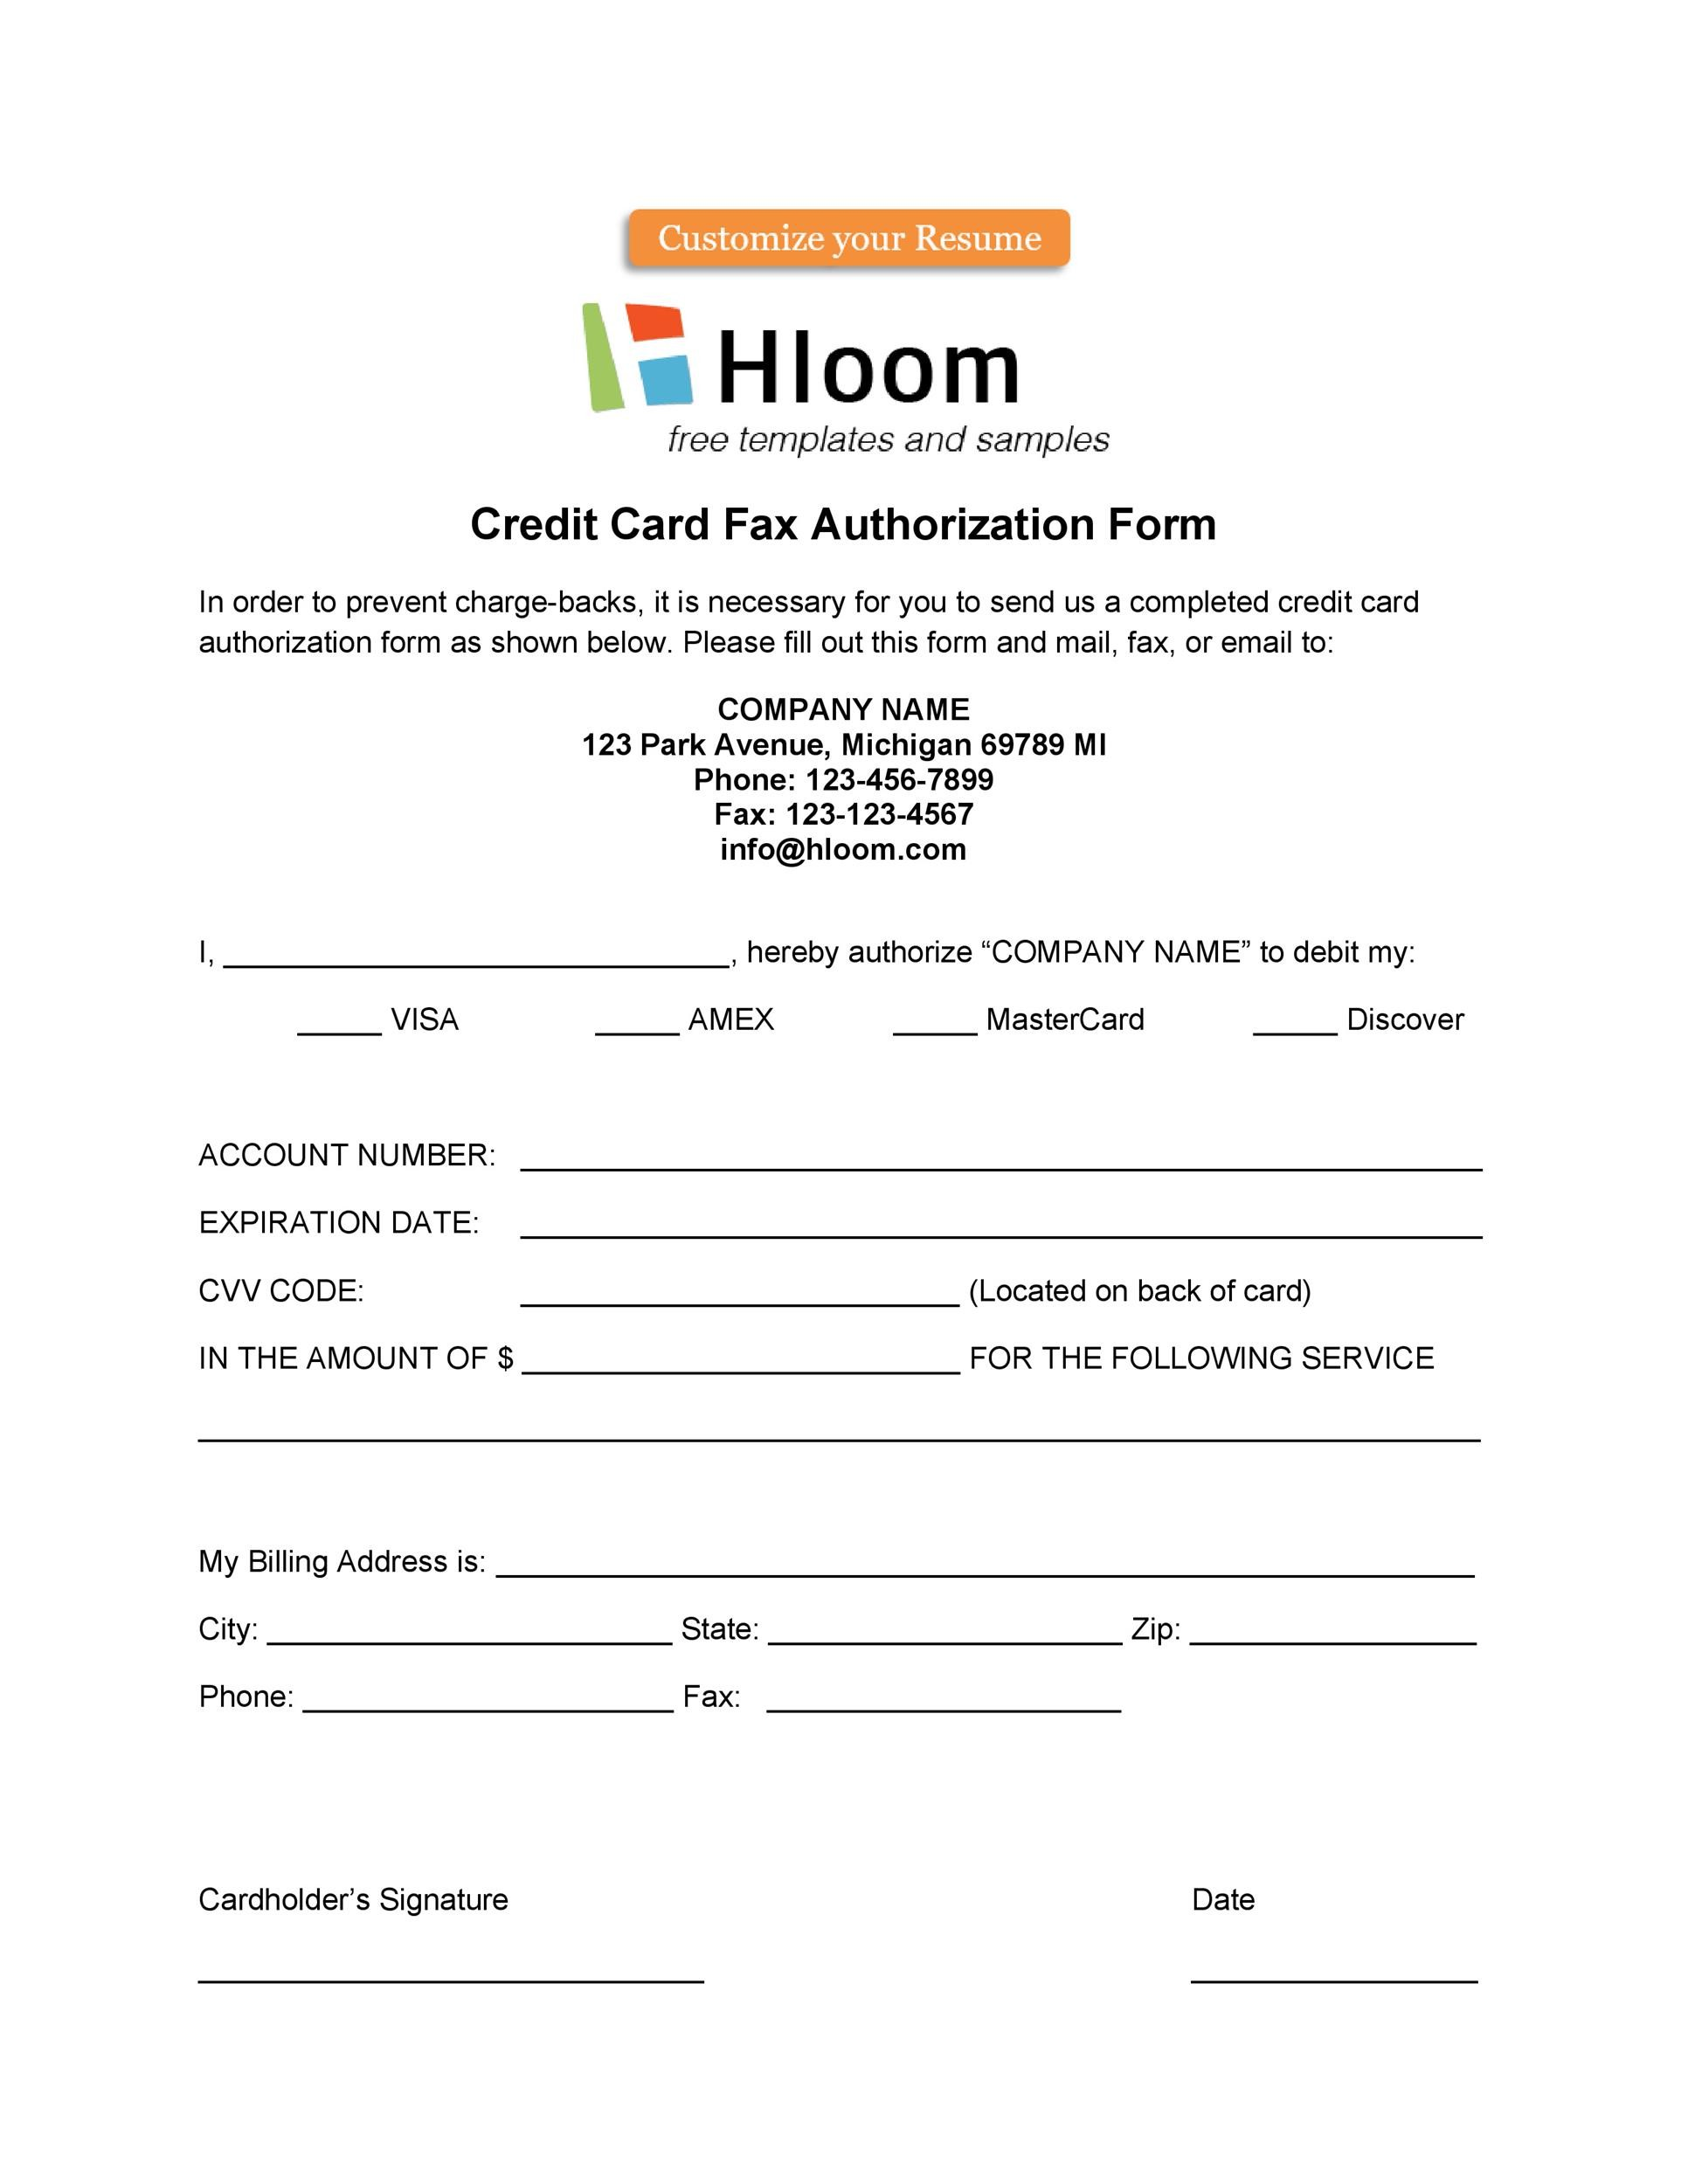 Free credit card authorization form template 40